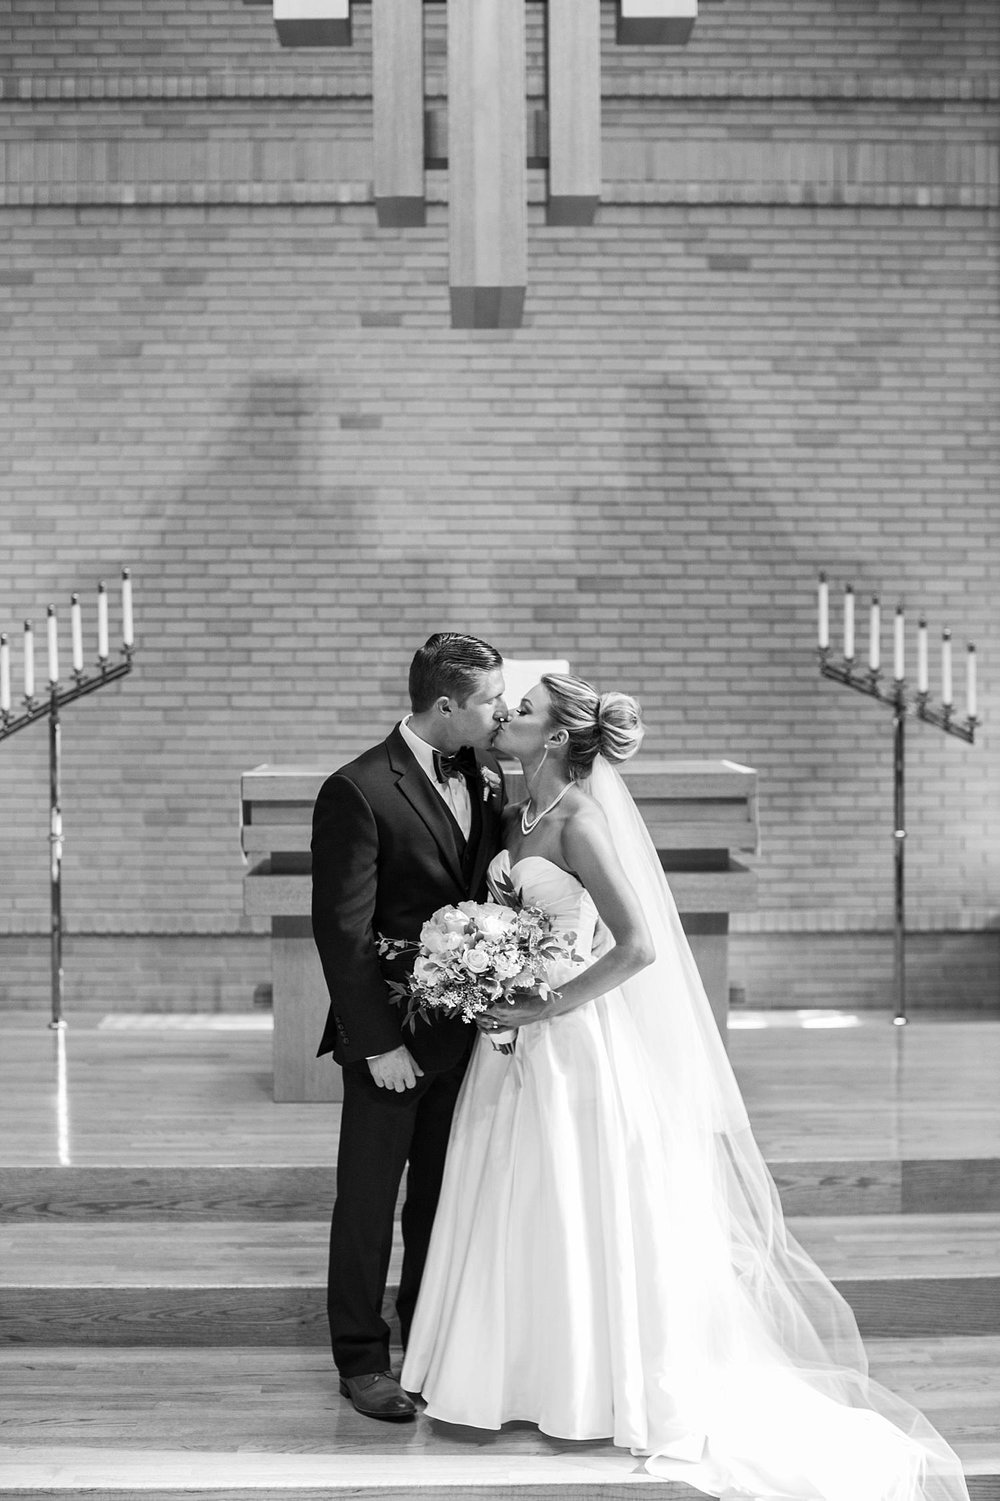 MinneapolisWeddingPhotographer_0523.jpg